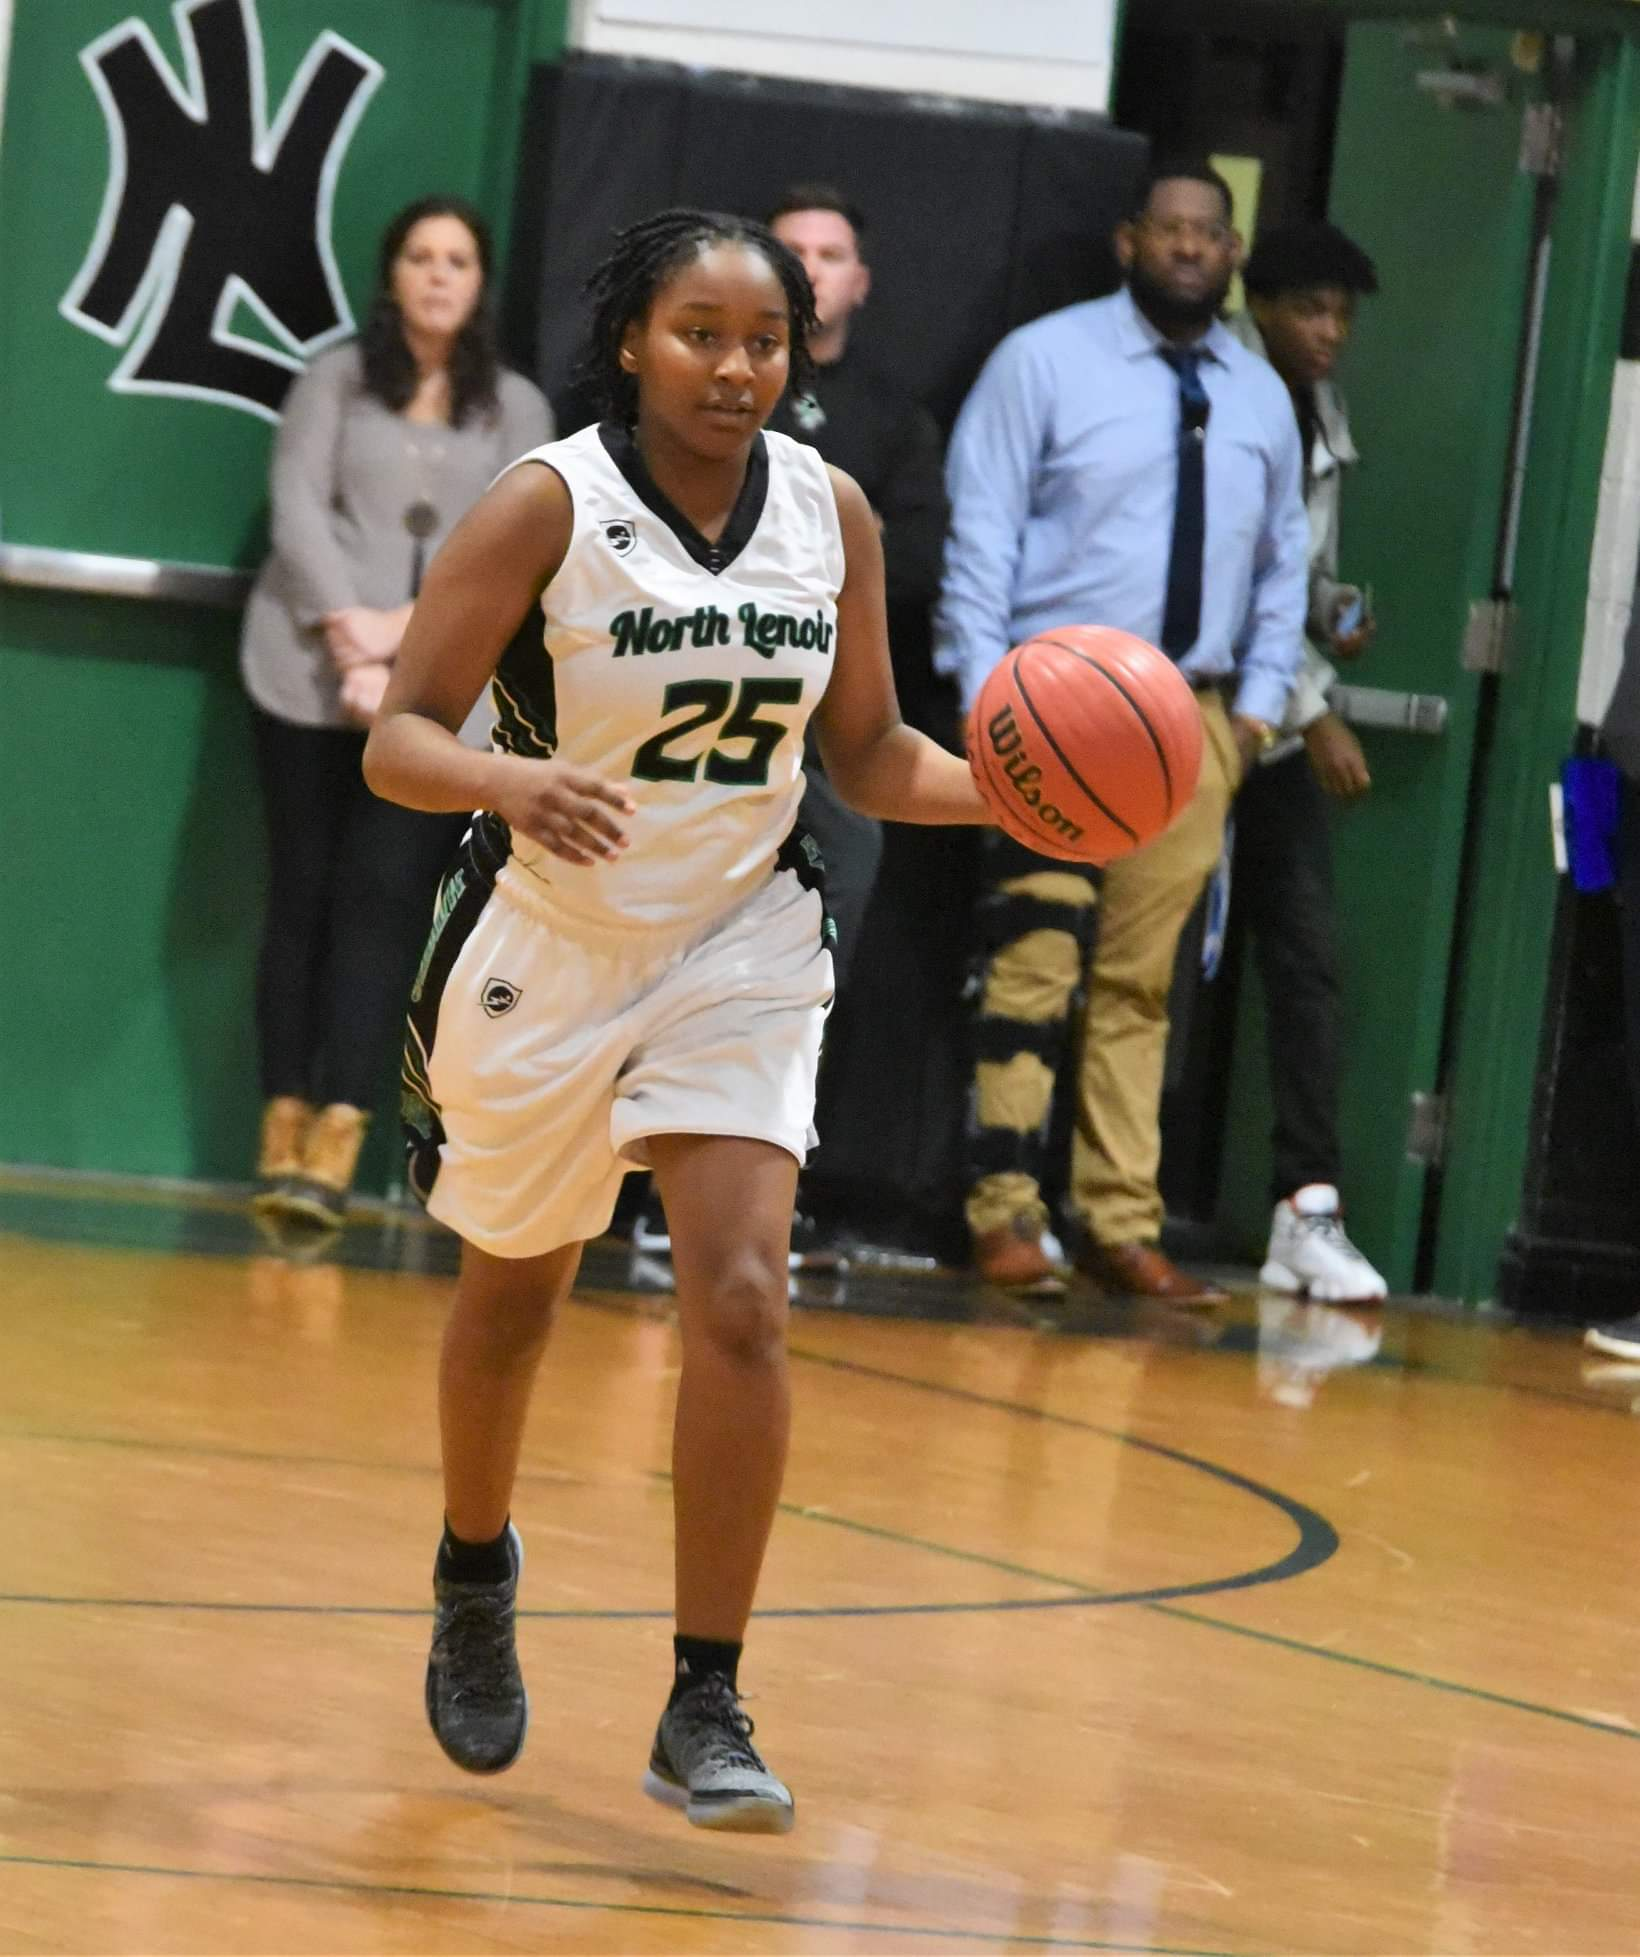 """North Lenoir's Ashanti Lynch brings the ball up court during the Hawks' win over Greene Central Friday. Photo by William """"Bud"""" Hardy / Neuse News"""